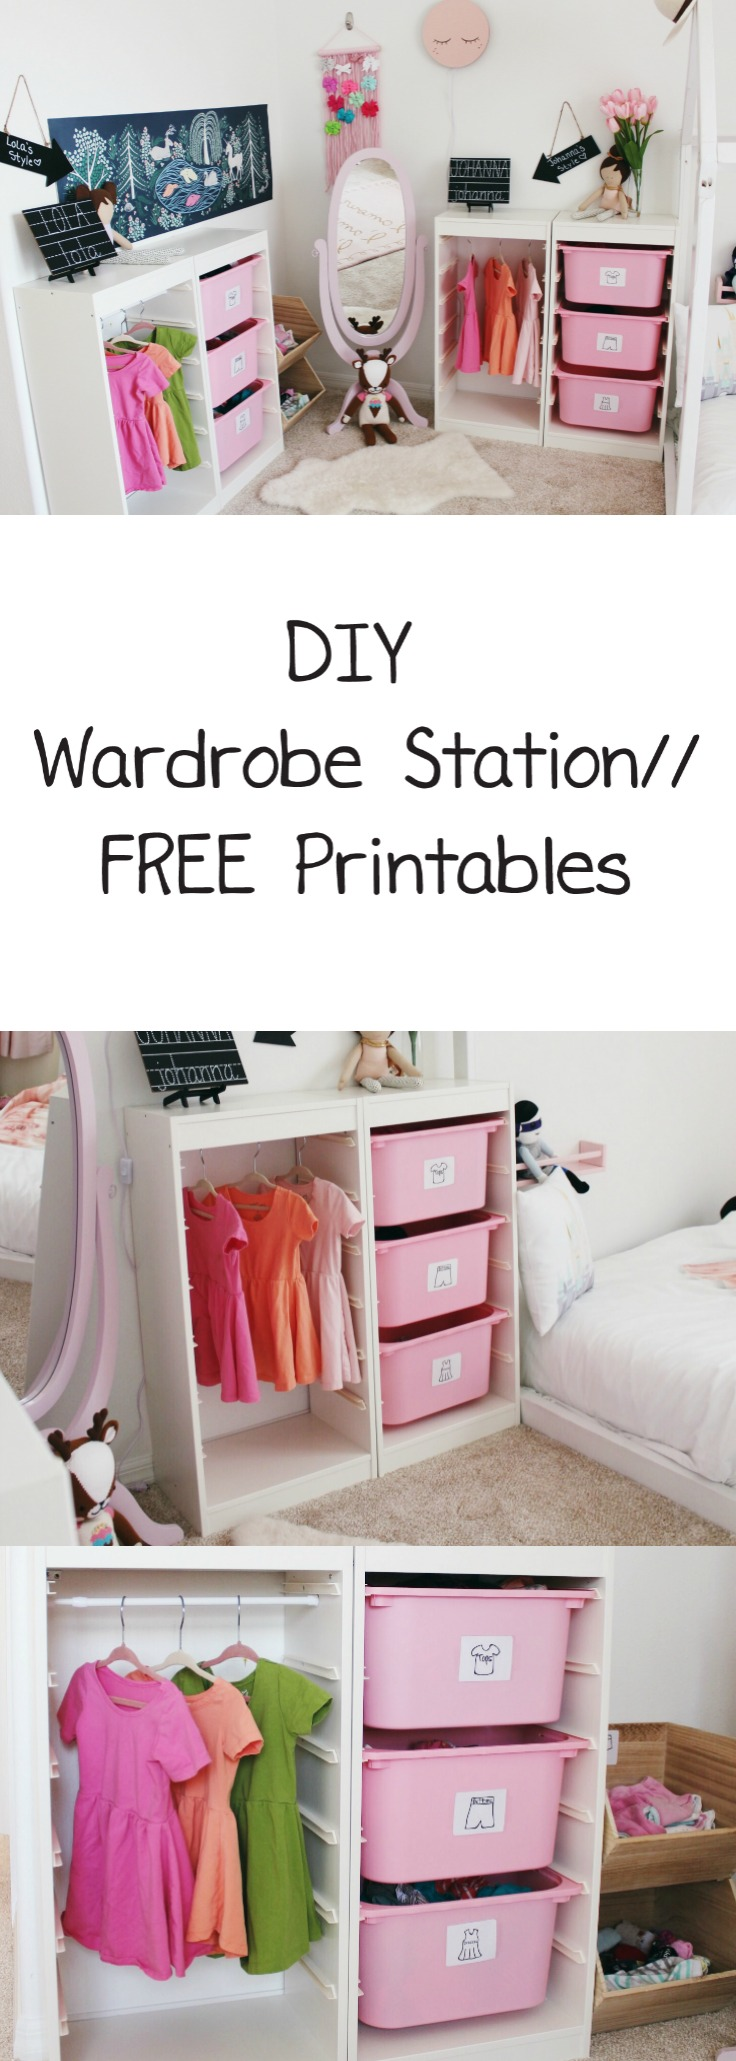 Wardrobe station, Montessori wardrobe, ikea hack, trofast hack, life hacks, mom life hacks, toddler clothing organization, organize toddler clothes, how to organize toddler clothes, how to organize children's clothes, shared bedroom clothing organization, children's wardrobe station, dress up station, clothing organization for kids, free clothing prinatbles, DIY clothing station for kids, print outs kids clothes, kids fashion, capsule wardrobe kids, DIY kids